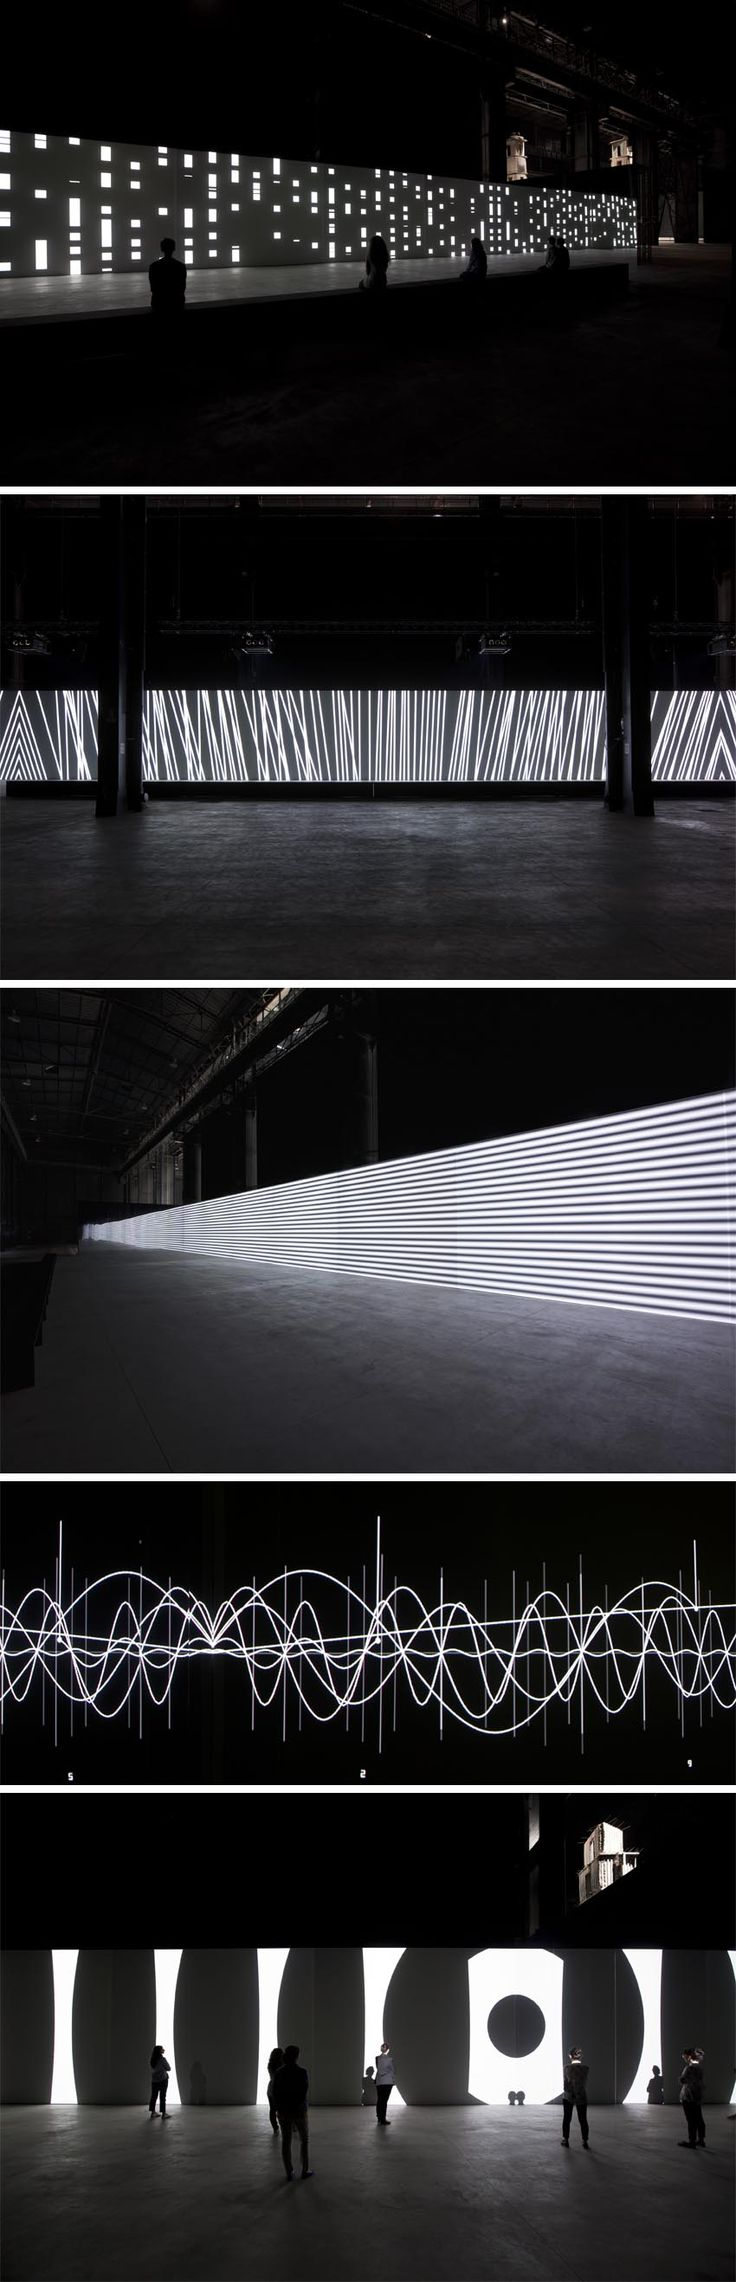 Lighting Design | Architectural Lighting | Illumination | Carsten Nicolai: Unidisplay